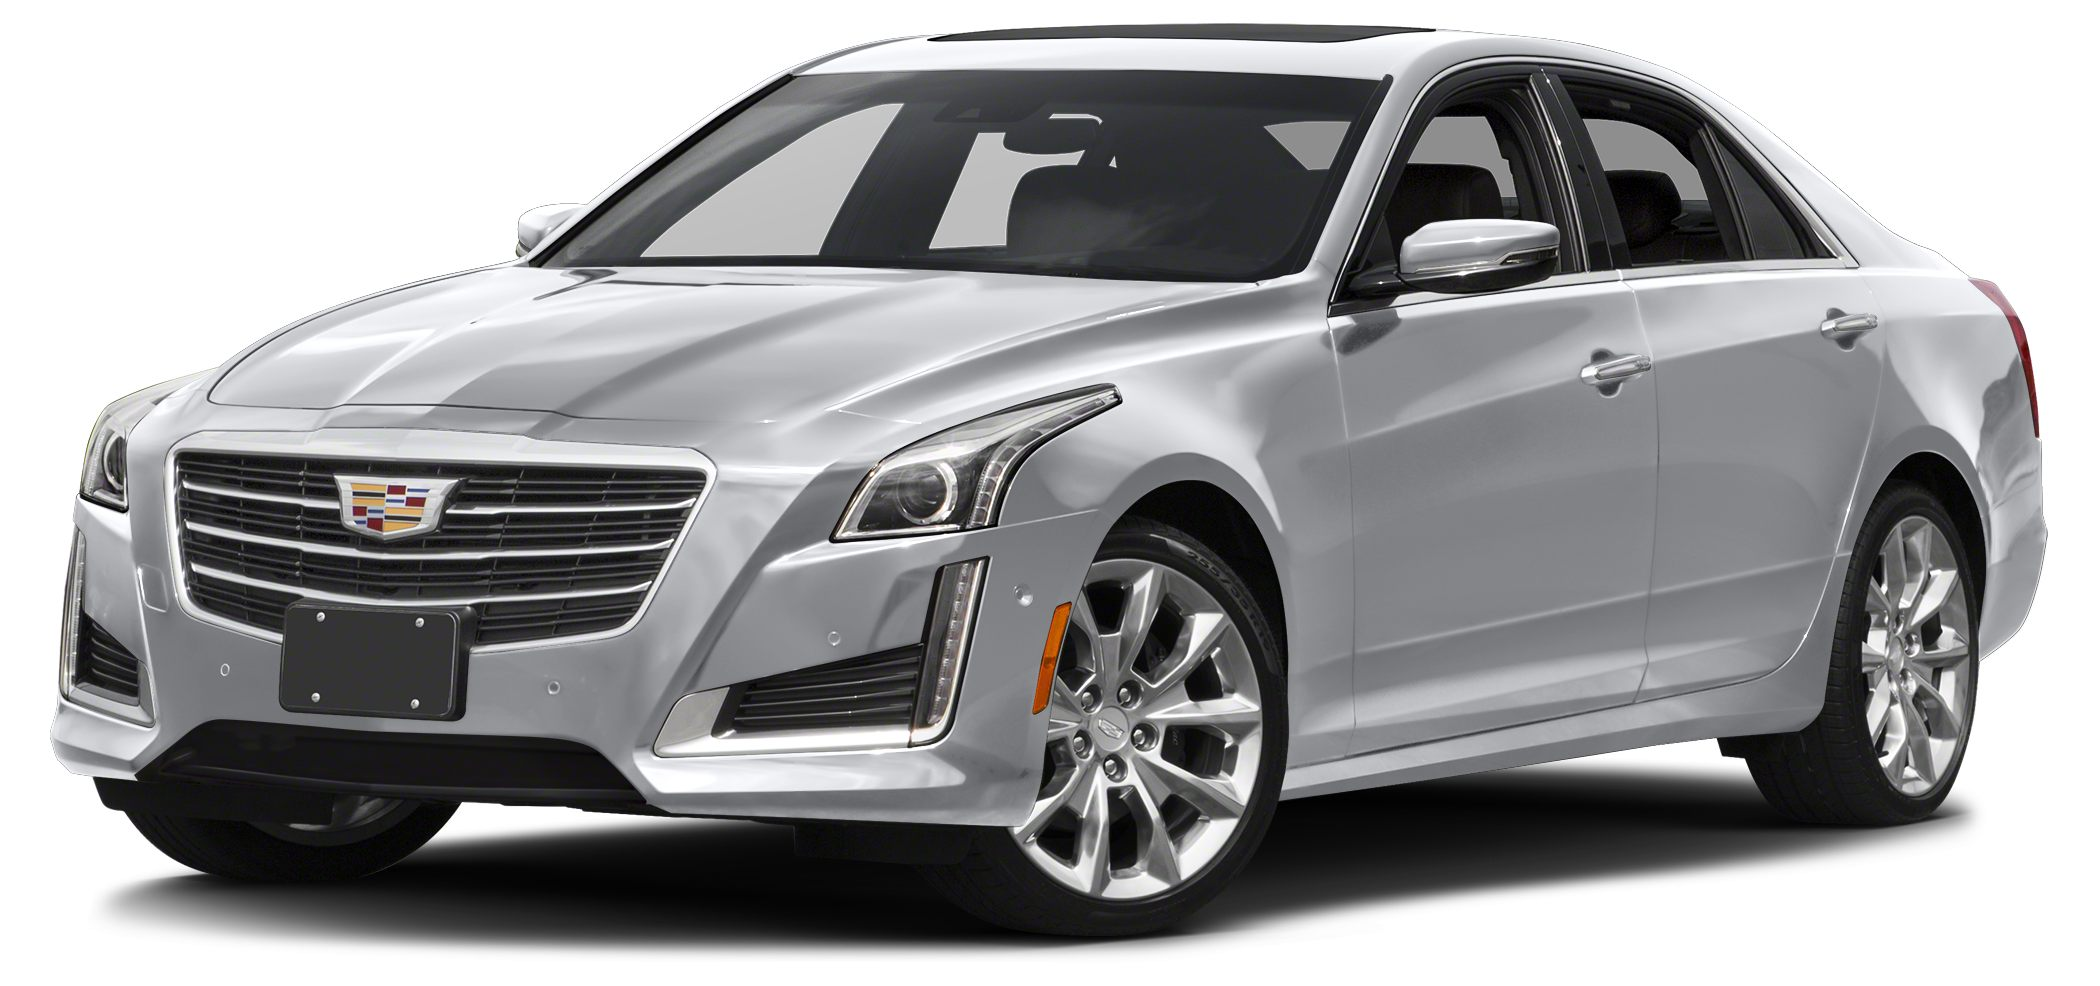 2015 Cadillac CTS 20 Turbo Luxury Only 20k Miles - AWD Turbo Luxury Edition - Navigation  GPS